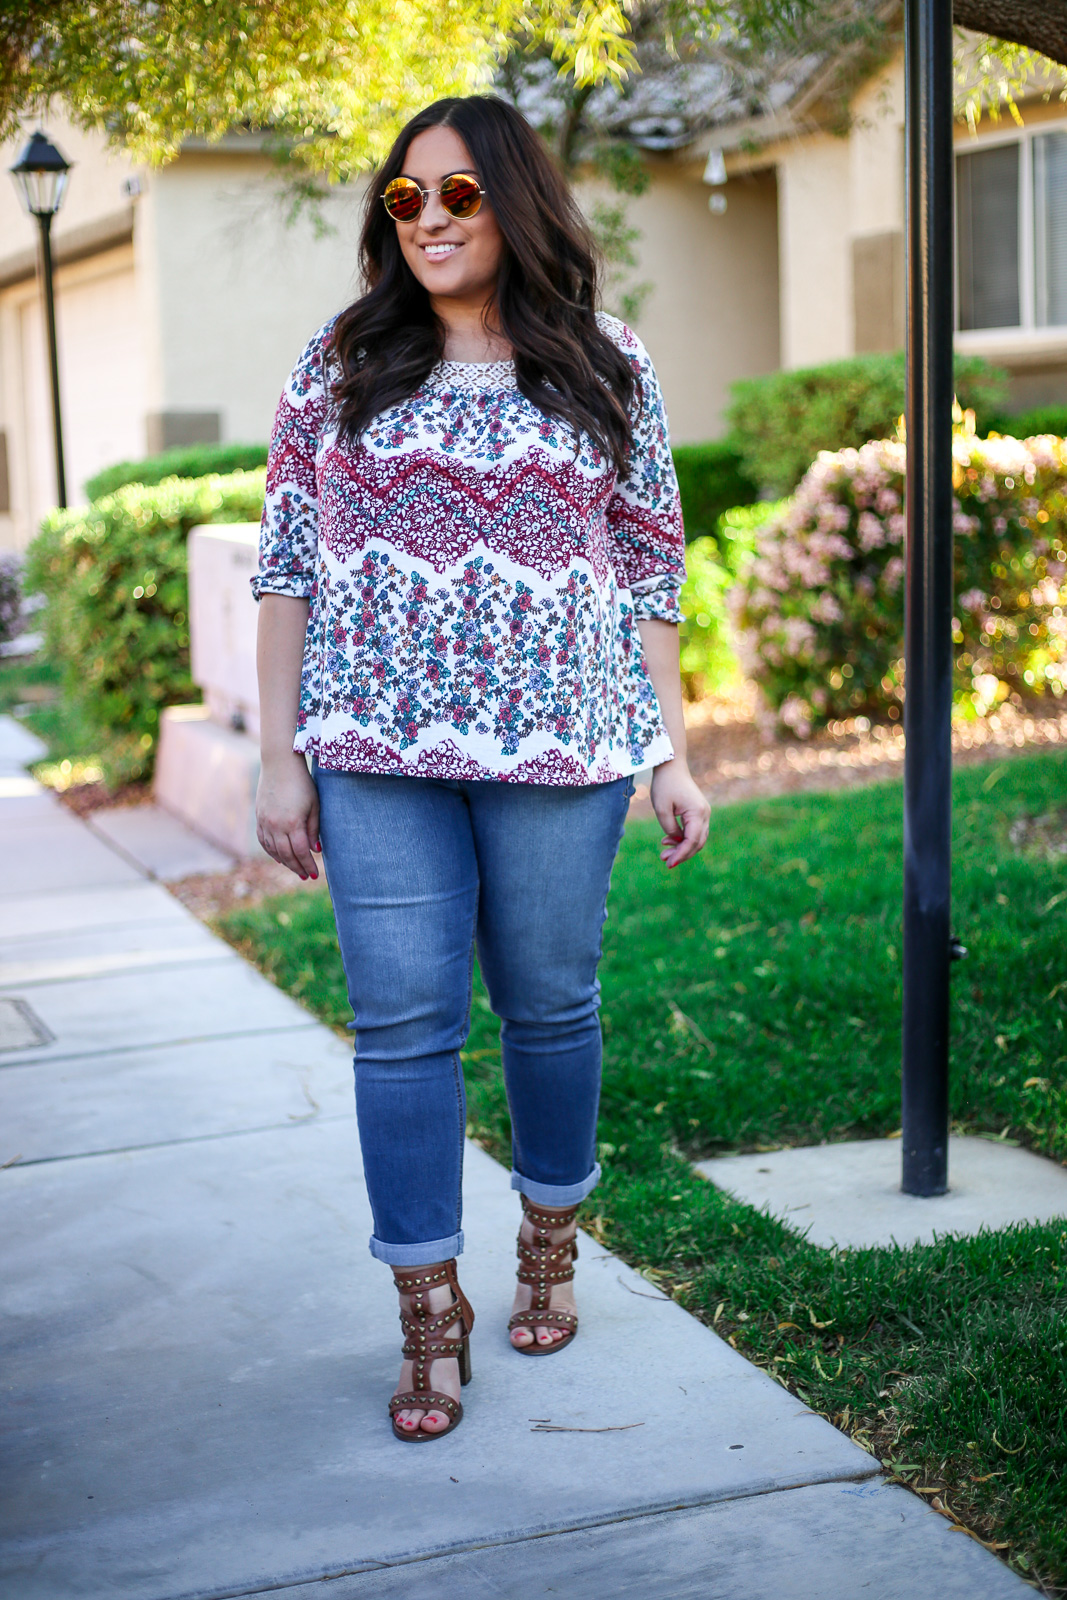 Affordable and comfy coachella outfit